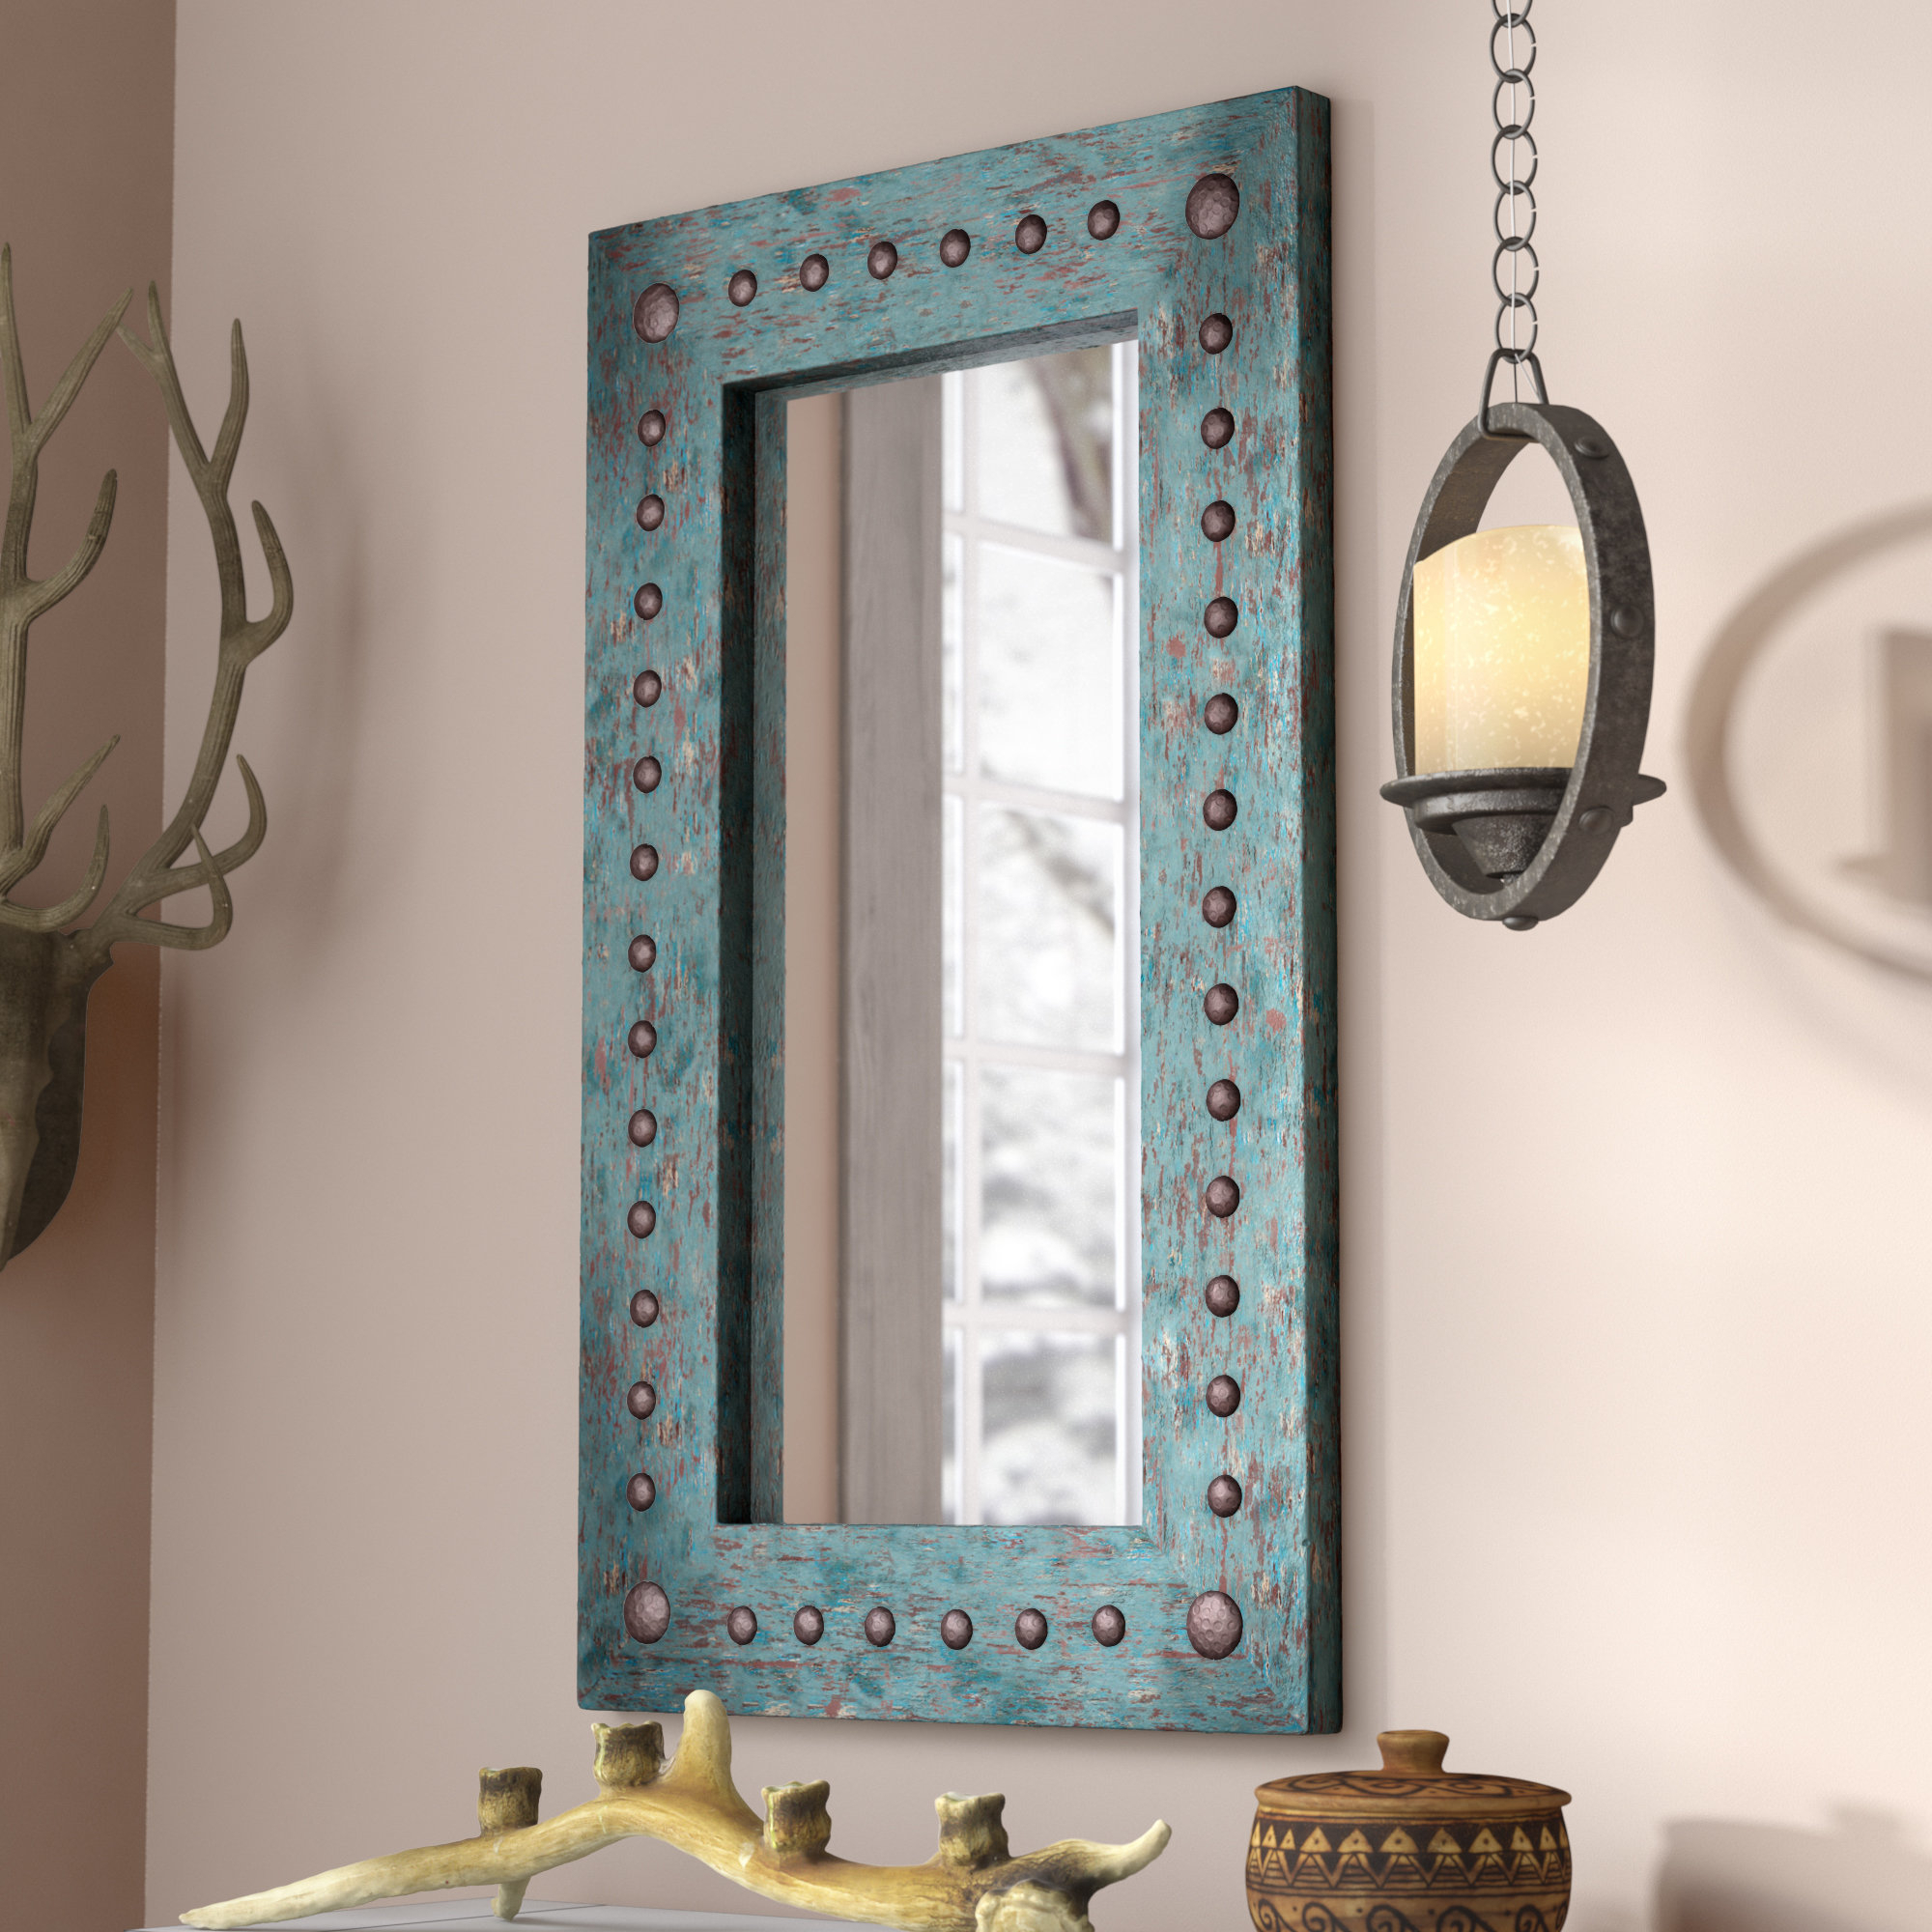 Lajoie Rustic Accent Mirror With Popular Hussain Tile Accent Wall Mirrors (Gallery 5 of 20)